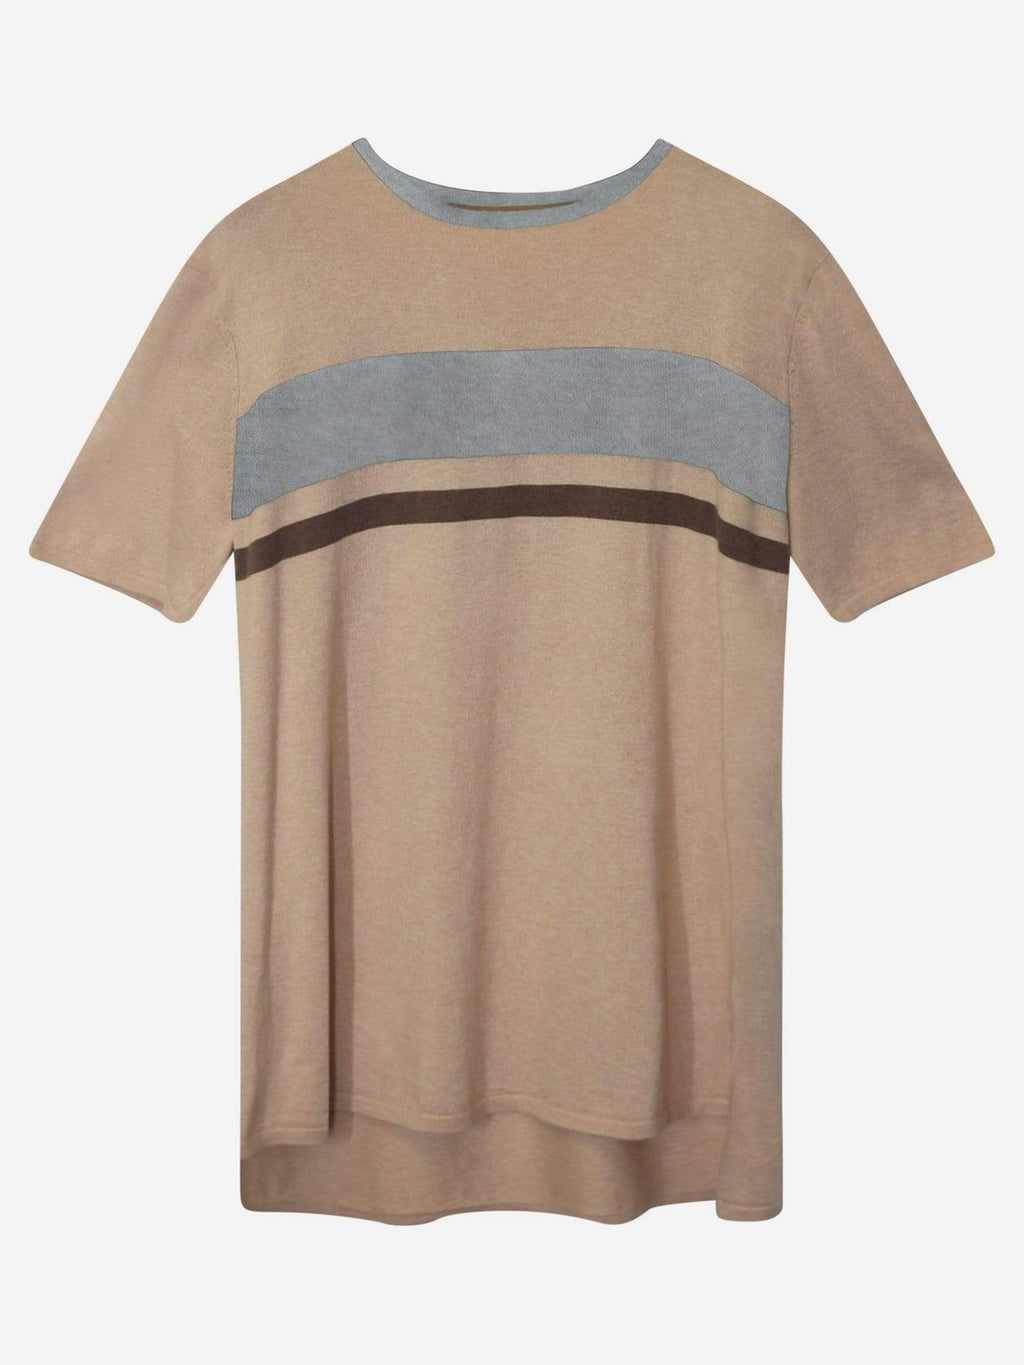 Camel/Grey/Dark Brown